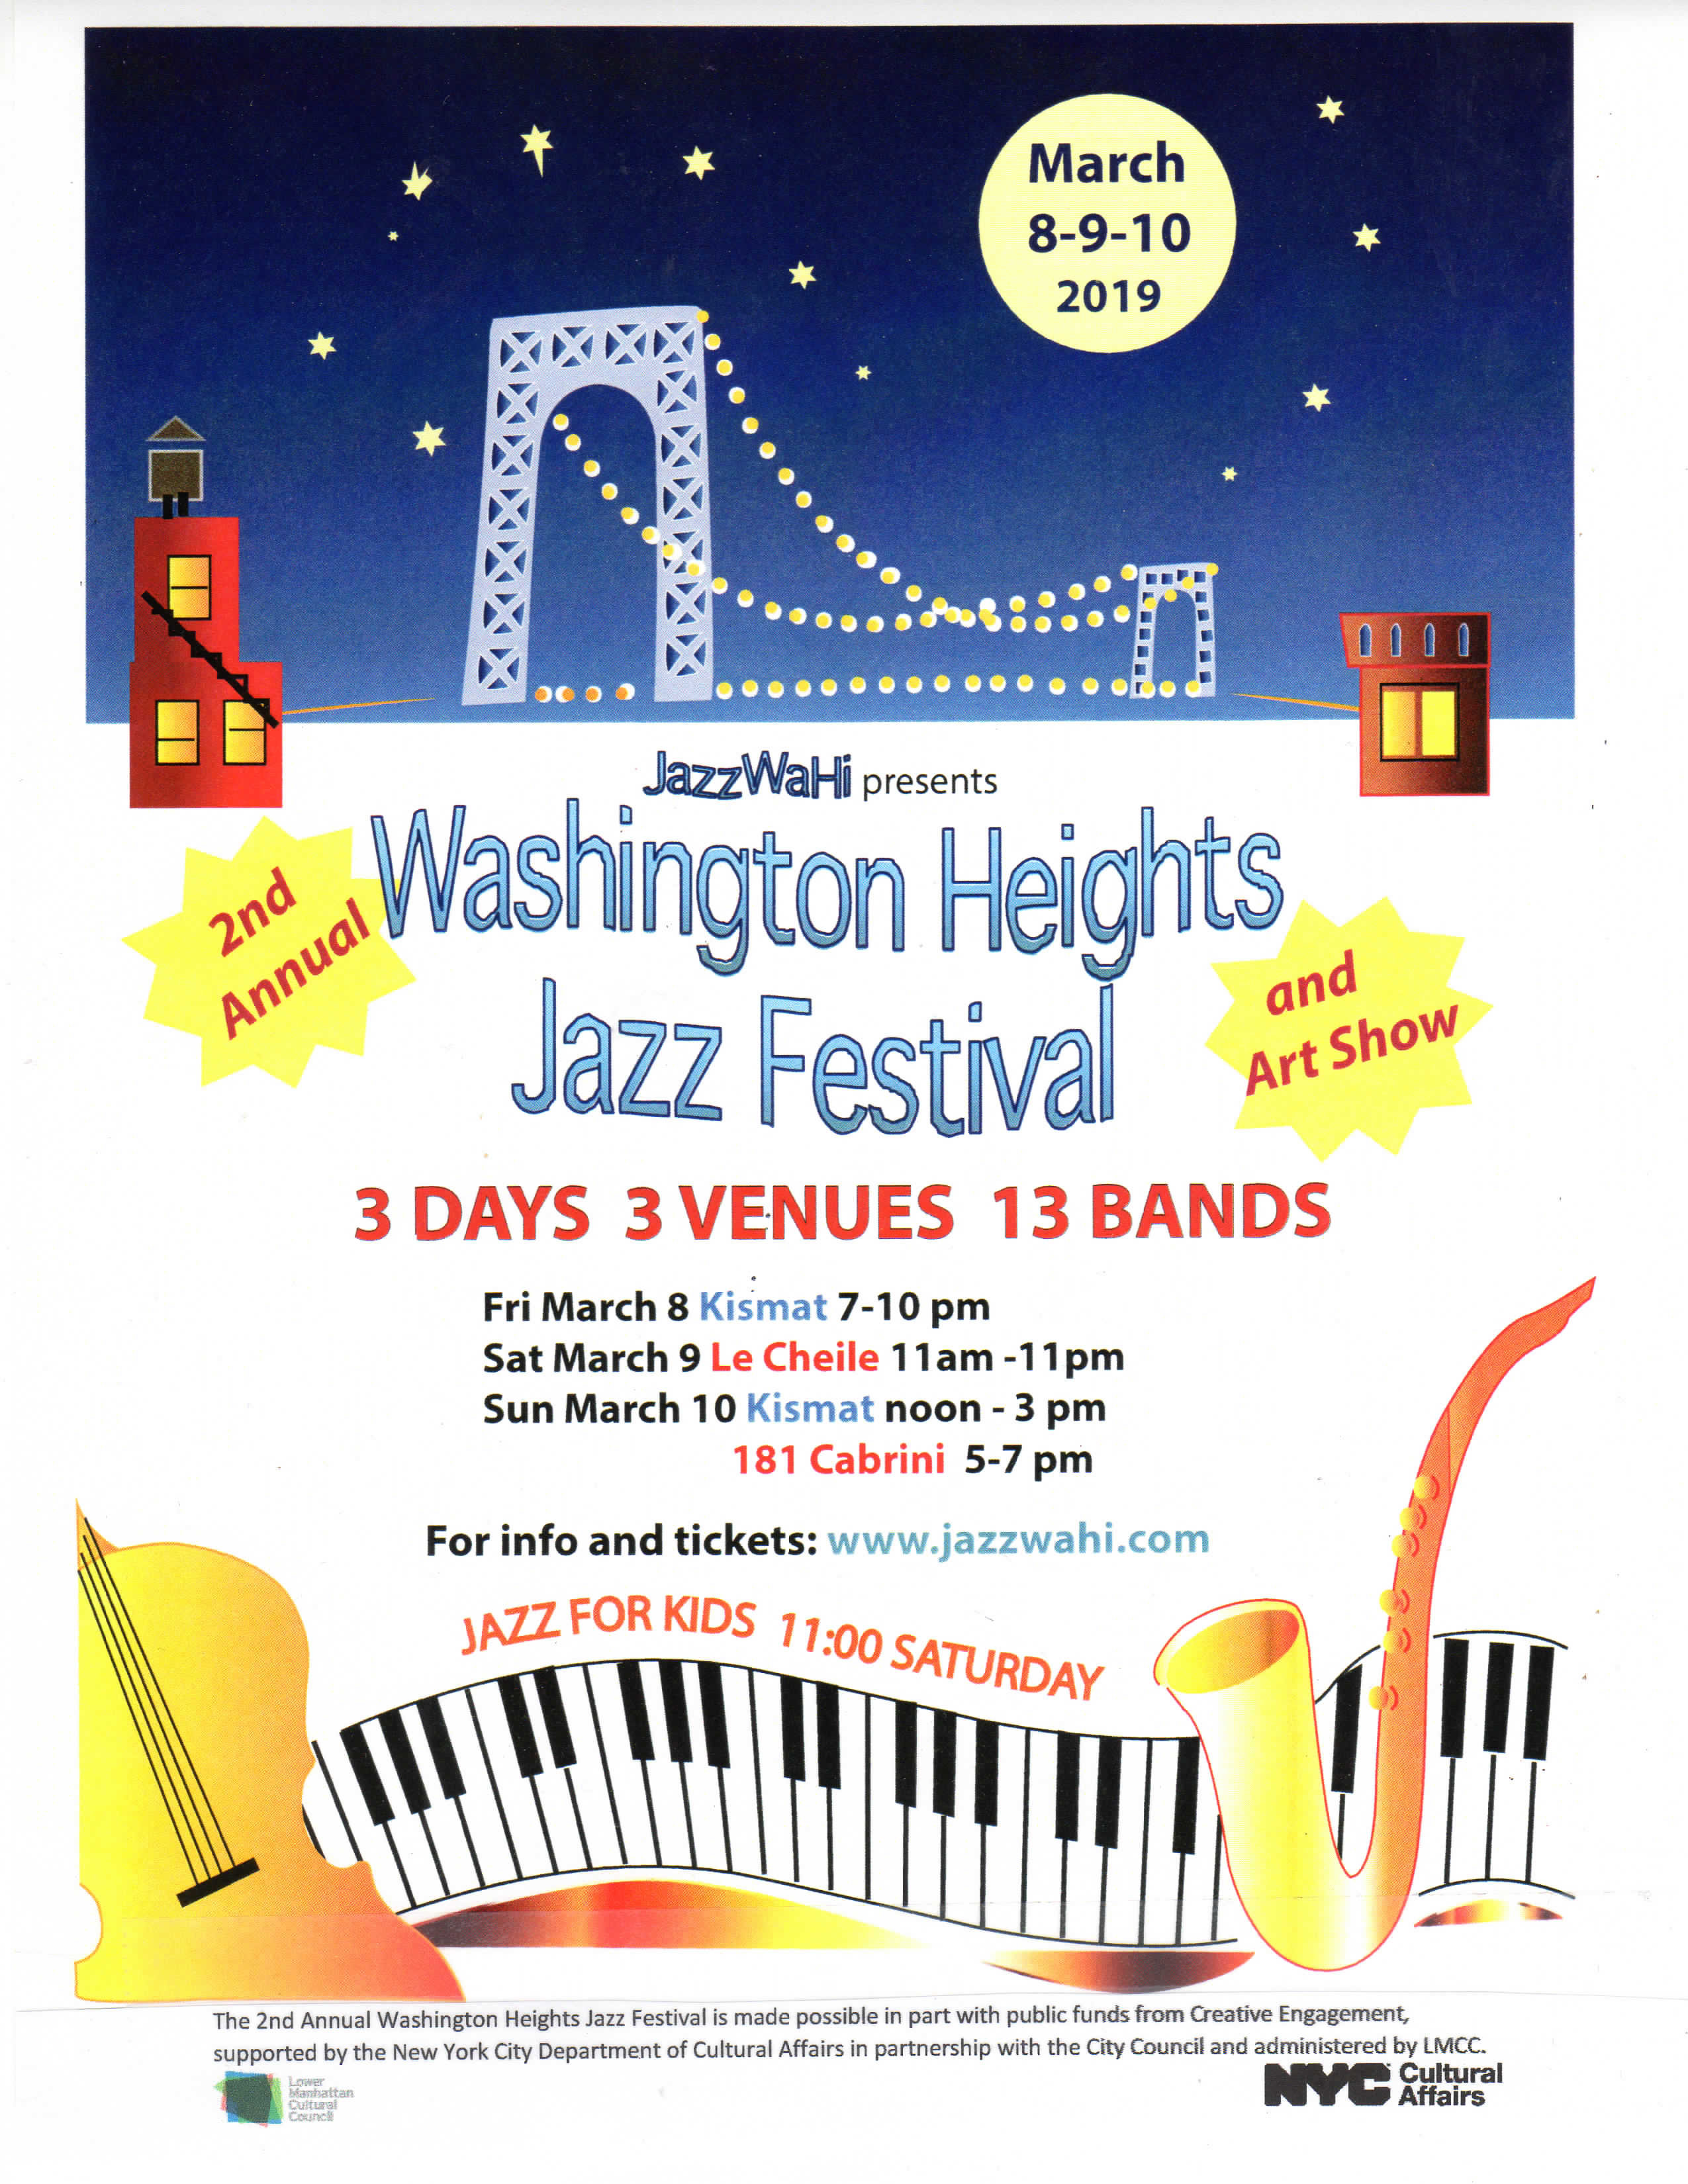 Playing March 9 @ 1:40pm with Josh Richman, Steve Wood and Andrew